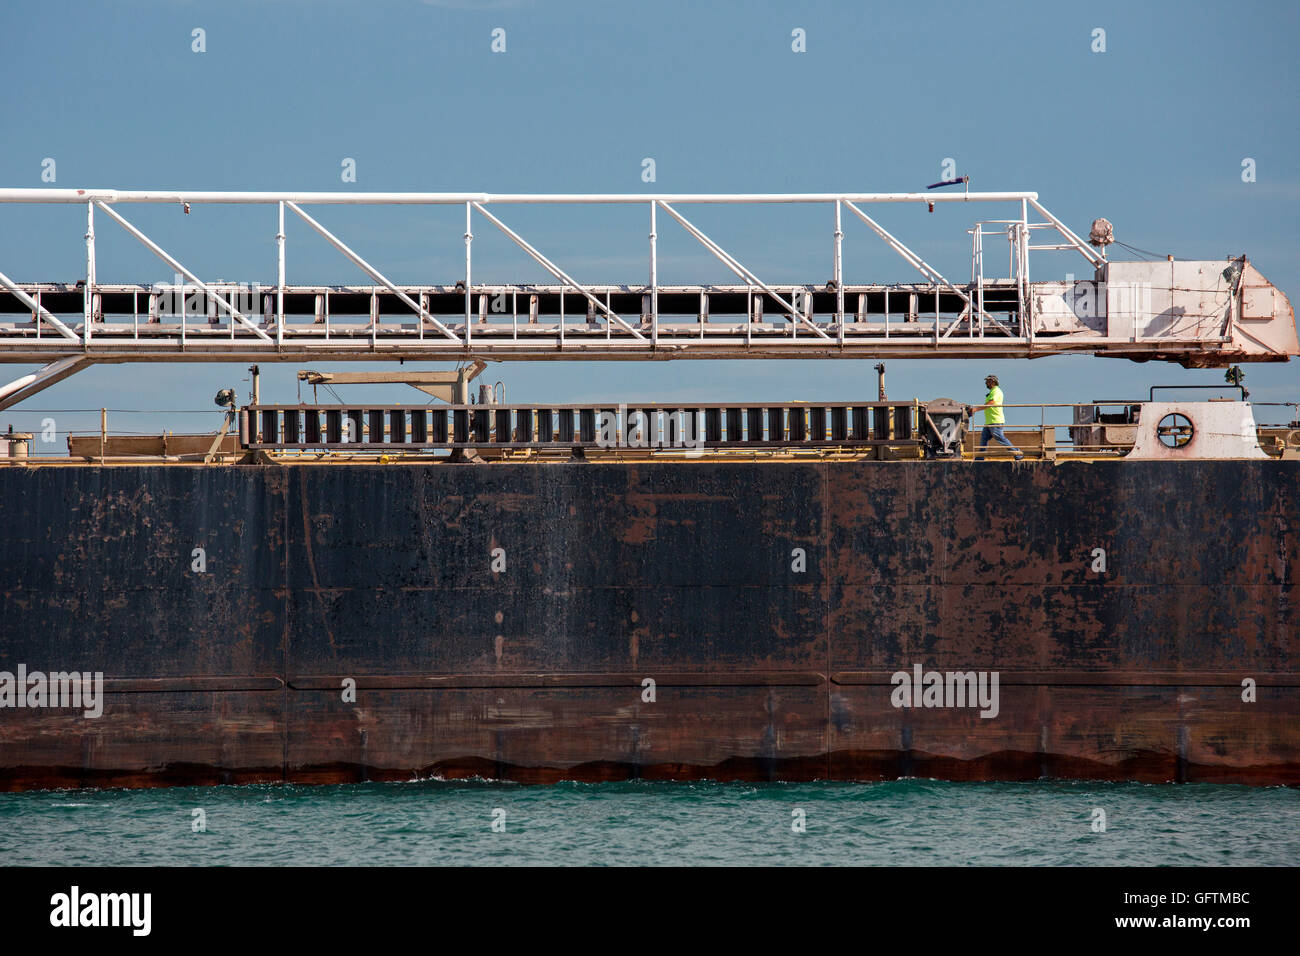 Detroit, Michigan - A crew member walks on the deck of the American Mariner bulk carrier sailing on the Detroit - Stock Image